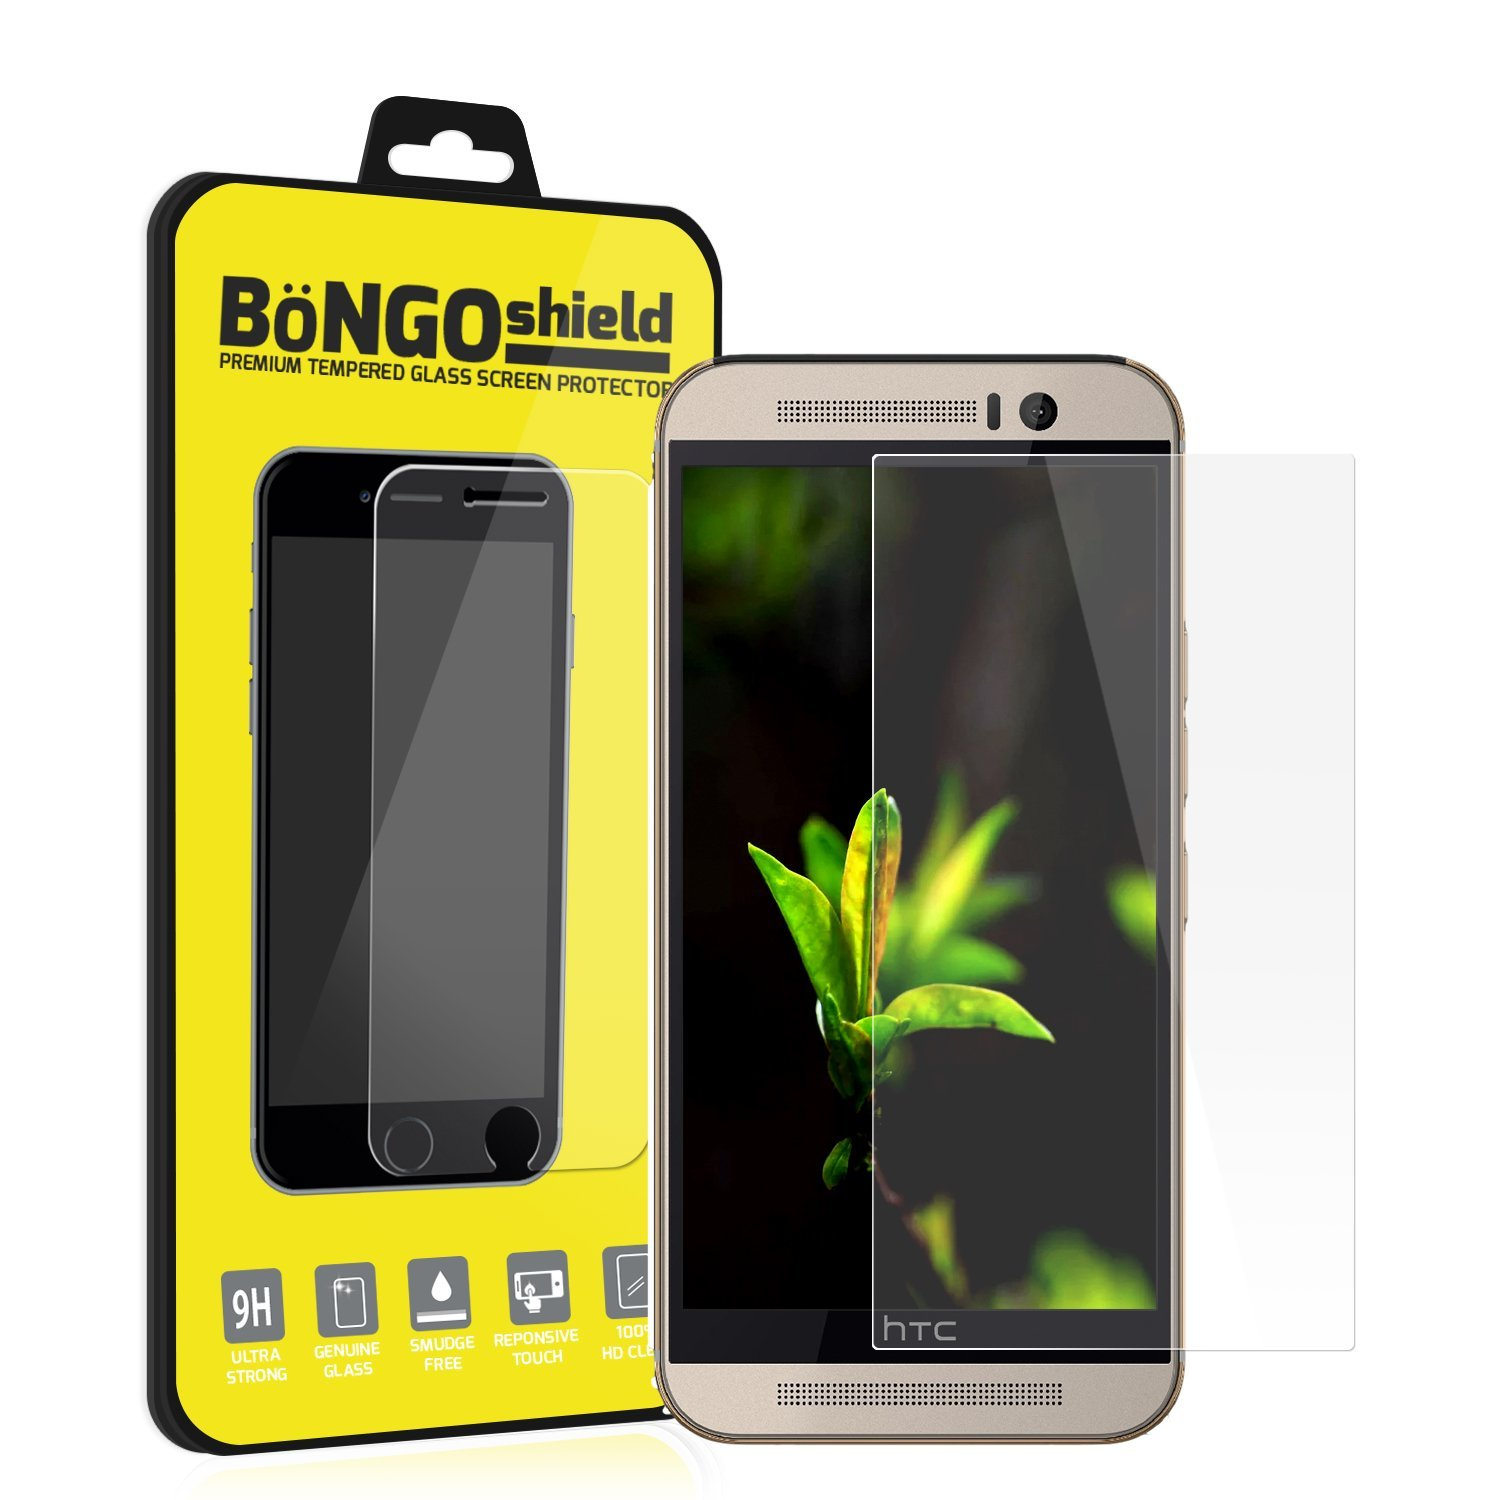 BinTEK Bongo Shield HTC One M9 Screen Protector PREMIUM HTC One M9 Tempered Glass Screen Protector / Compatible with AT&T, T-Mobile, Sprint, Verizon Models